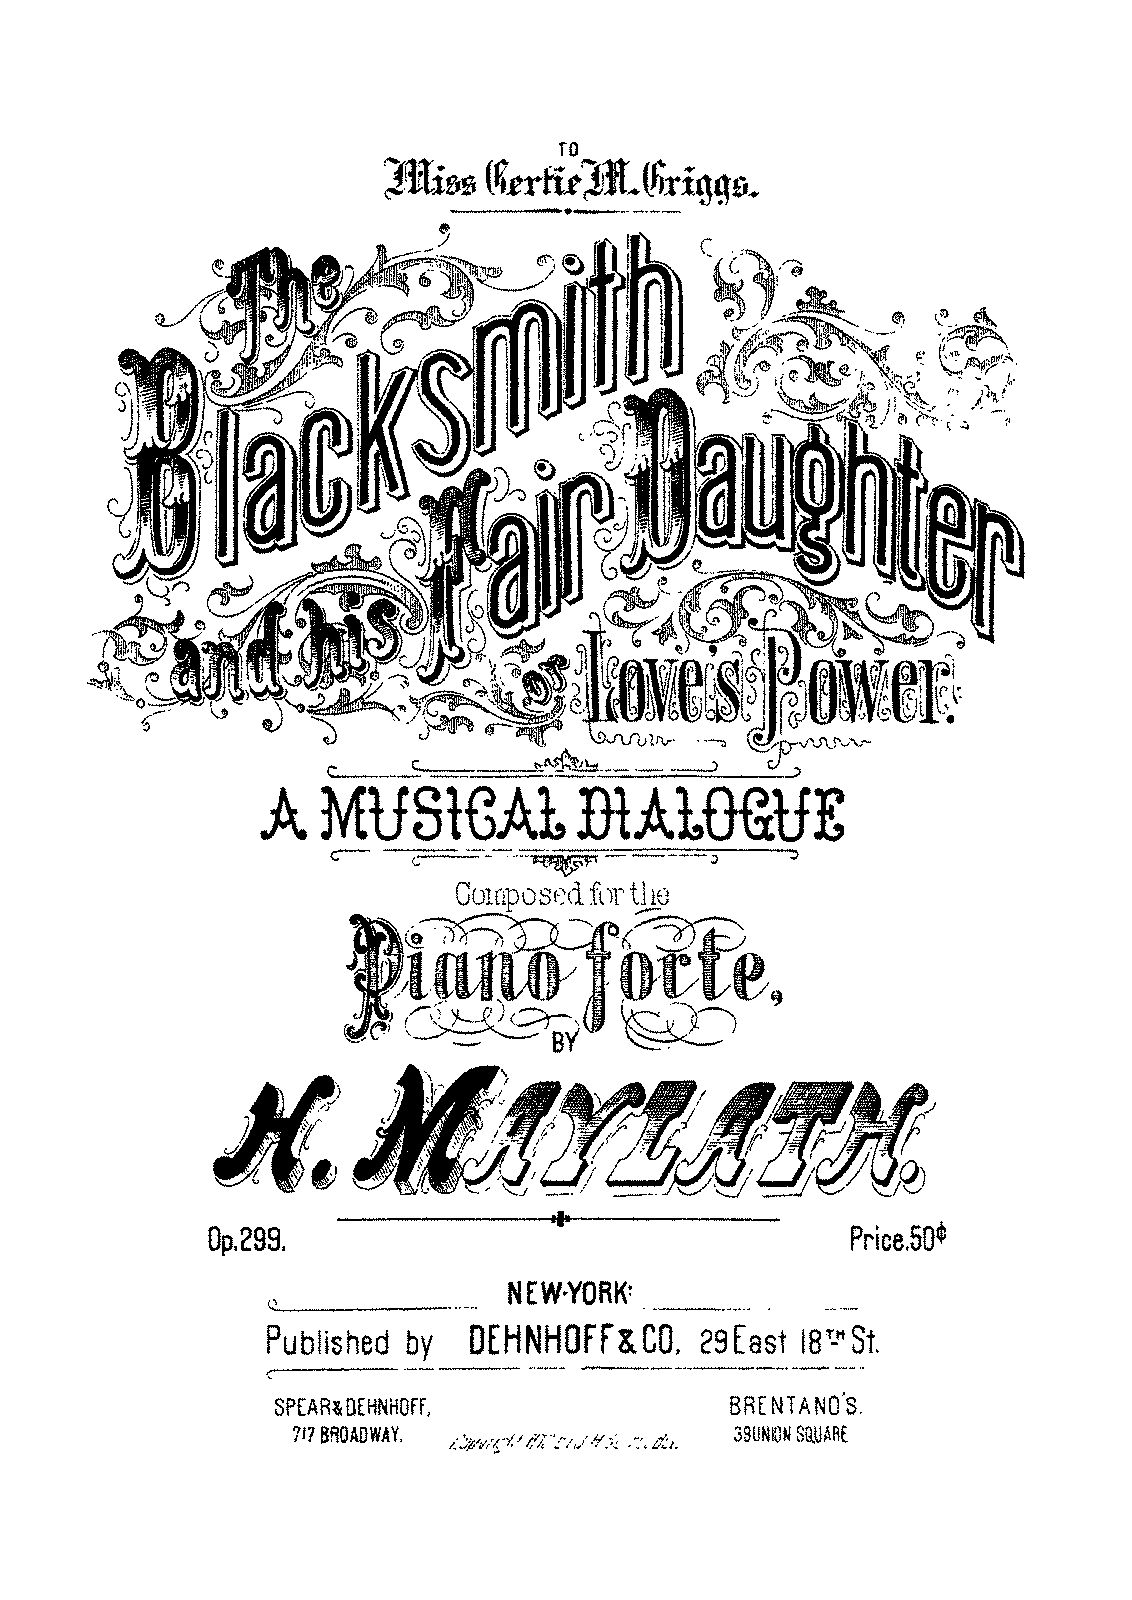 PMLP615116-Maylath - 299 The Blacksmith & His fair Daughter - A Musical Dialogue op 299.pdf